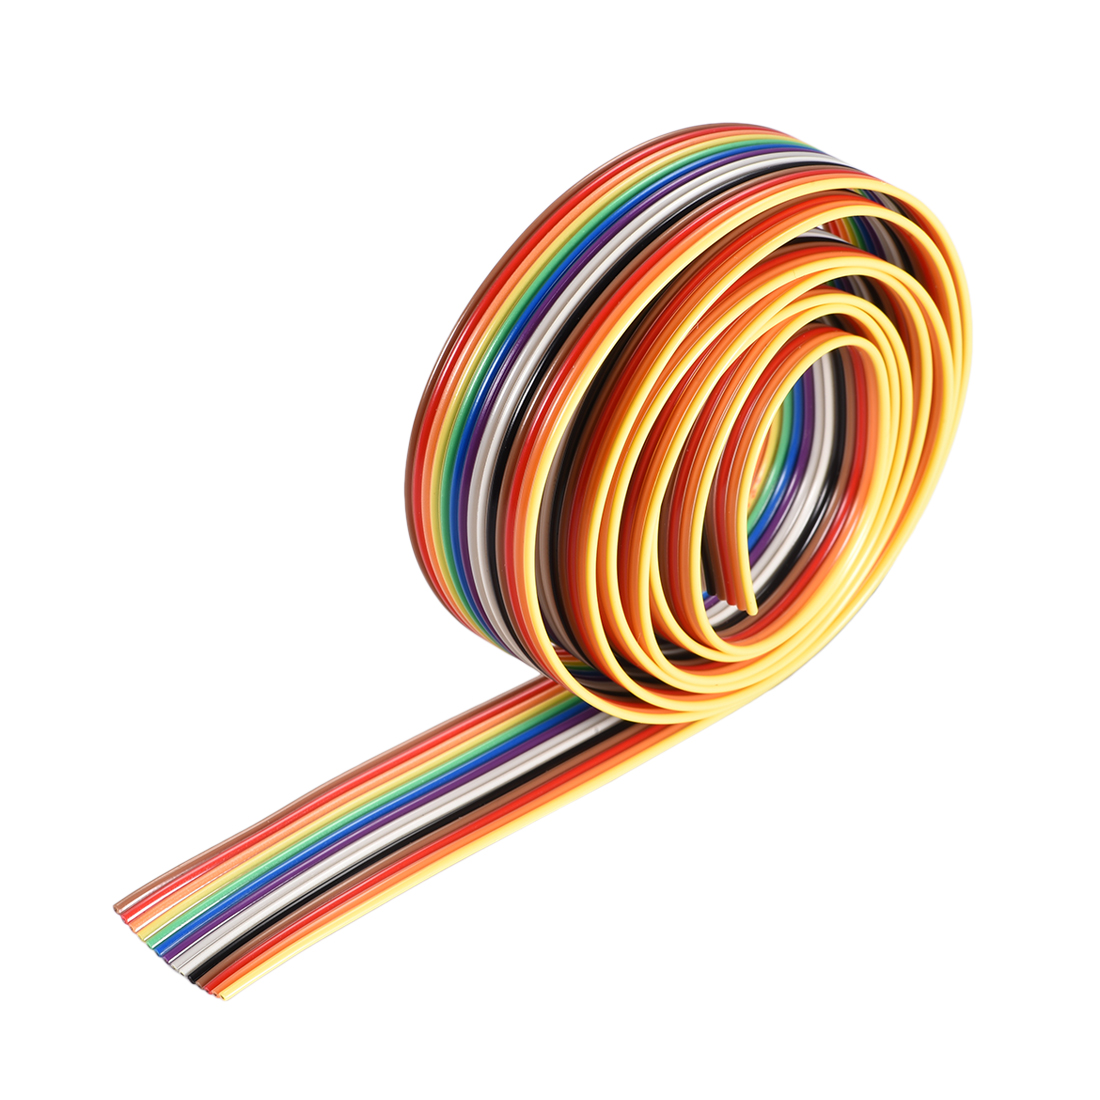 IDC Rainbow Wire Flat Ribbon Cable 14P 1.27mm Pitch 1meter/3.3ft Length